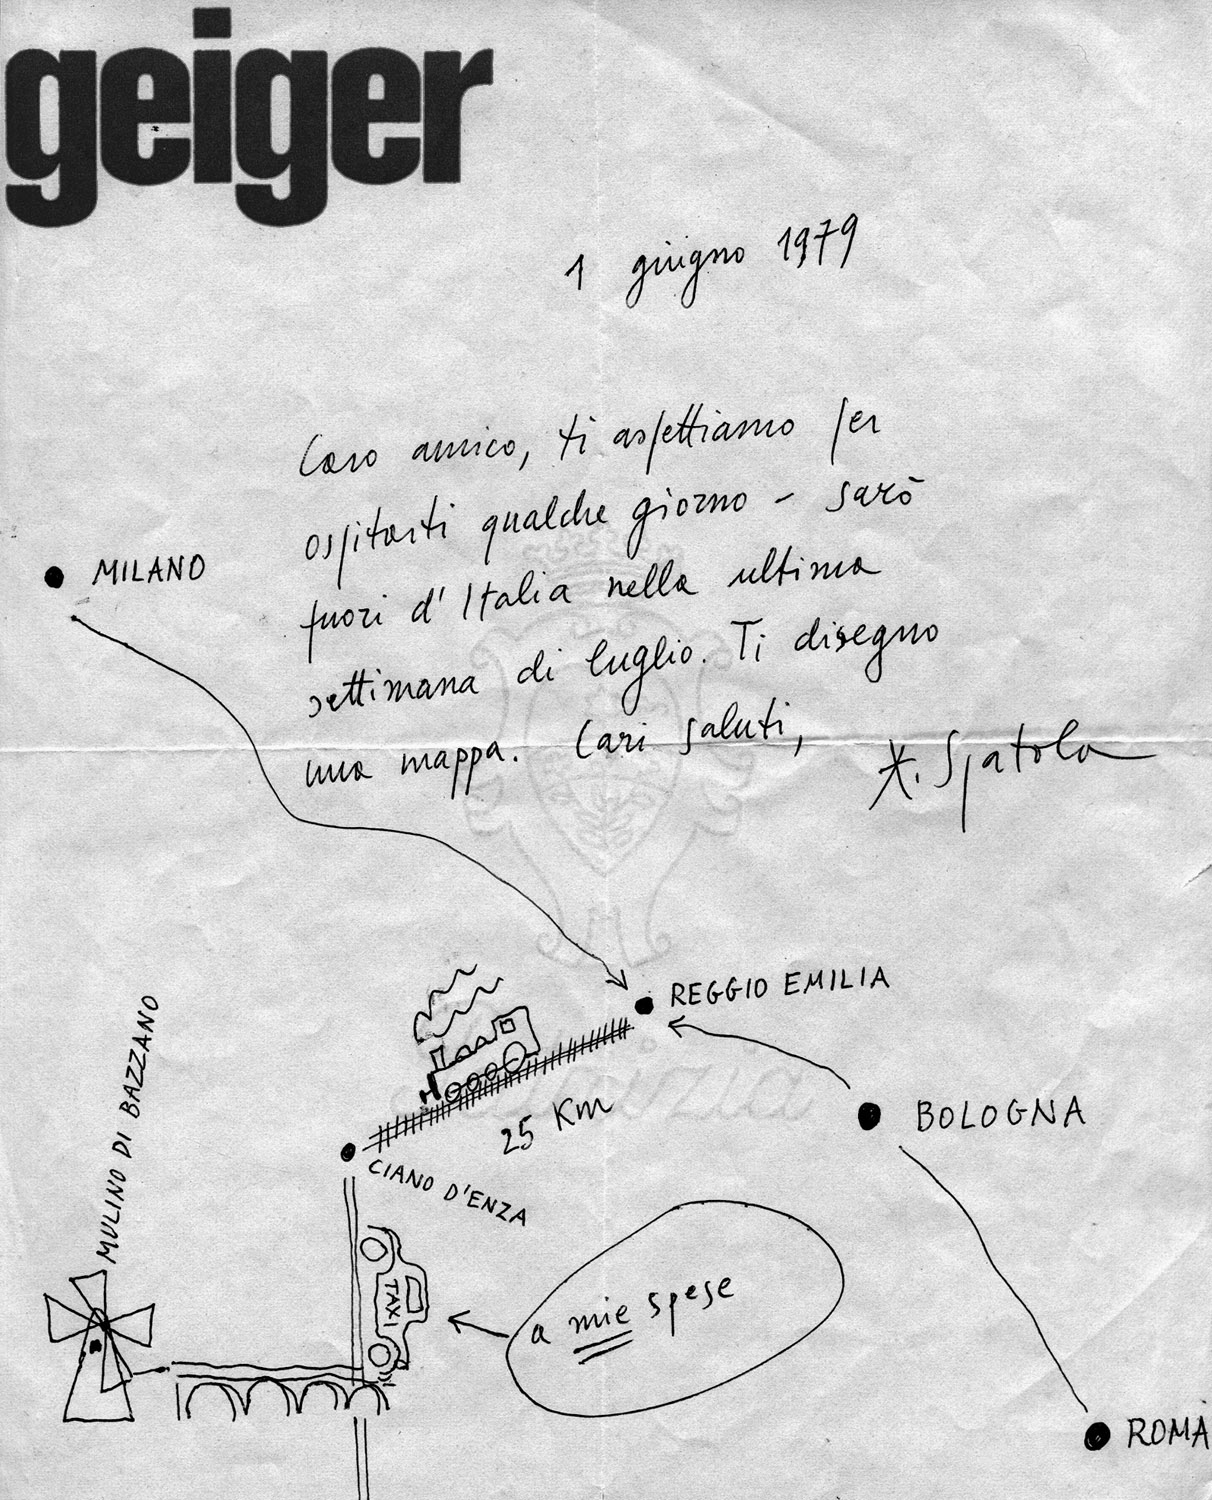 Invitation letter with map from the Italian visual and sound poet  Adriano Spatola to György Galántai and Júlia Klaniczay, 1979